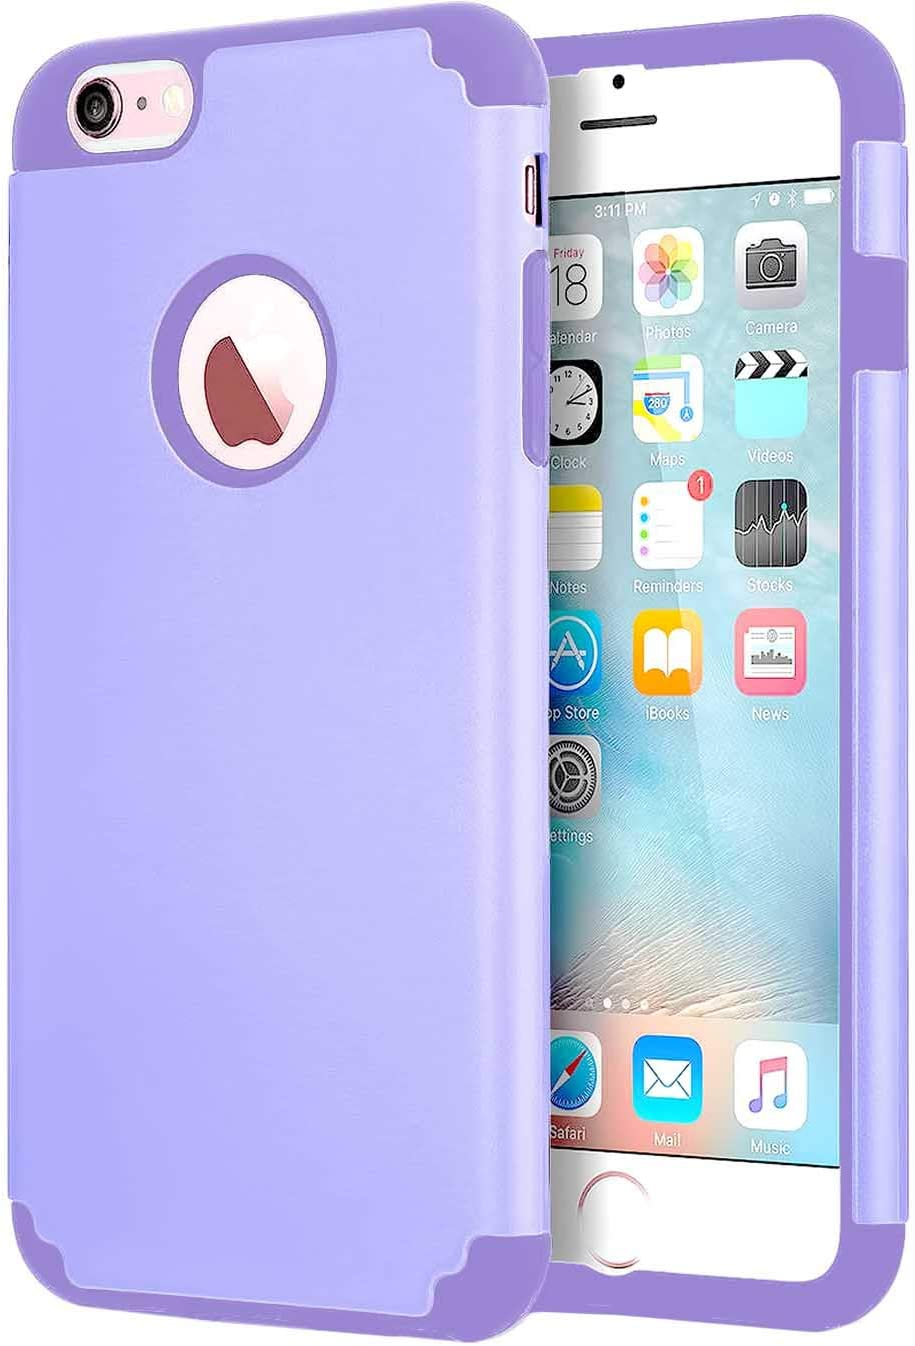 CaseHQ Case for iPhone 6 Plus Case,iPhone 6s Plus 5.5 inch Case,Slim fit Rubber PC Shockproof Cover Case with Heavy Duty Protection Dual Layer Scratch Resistant Phone-Purple